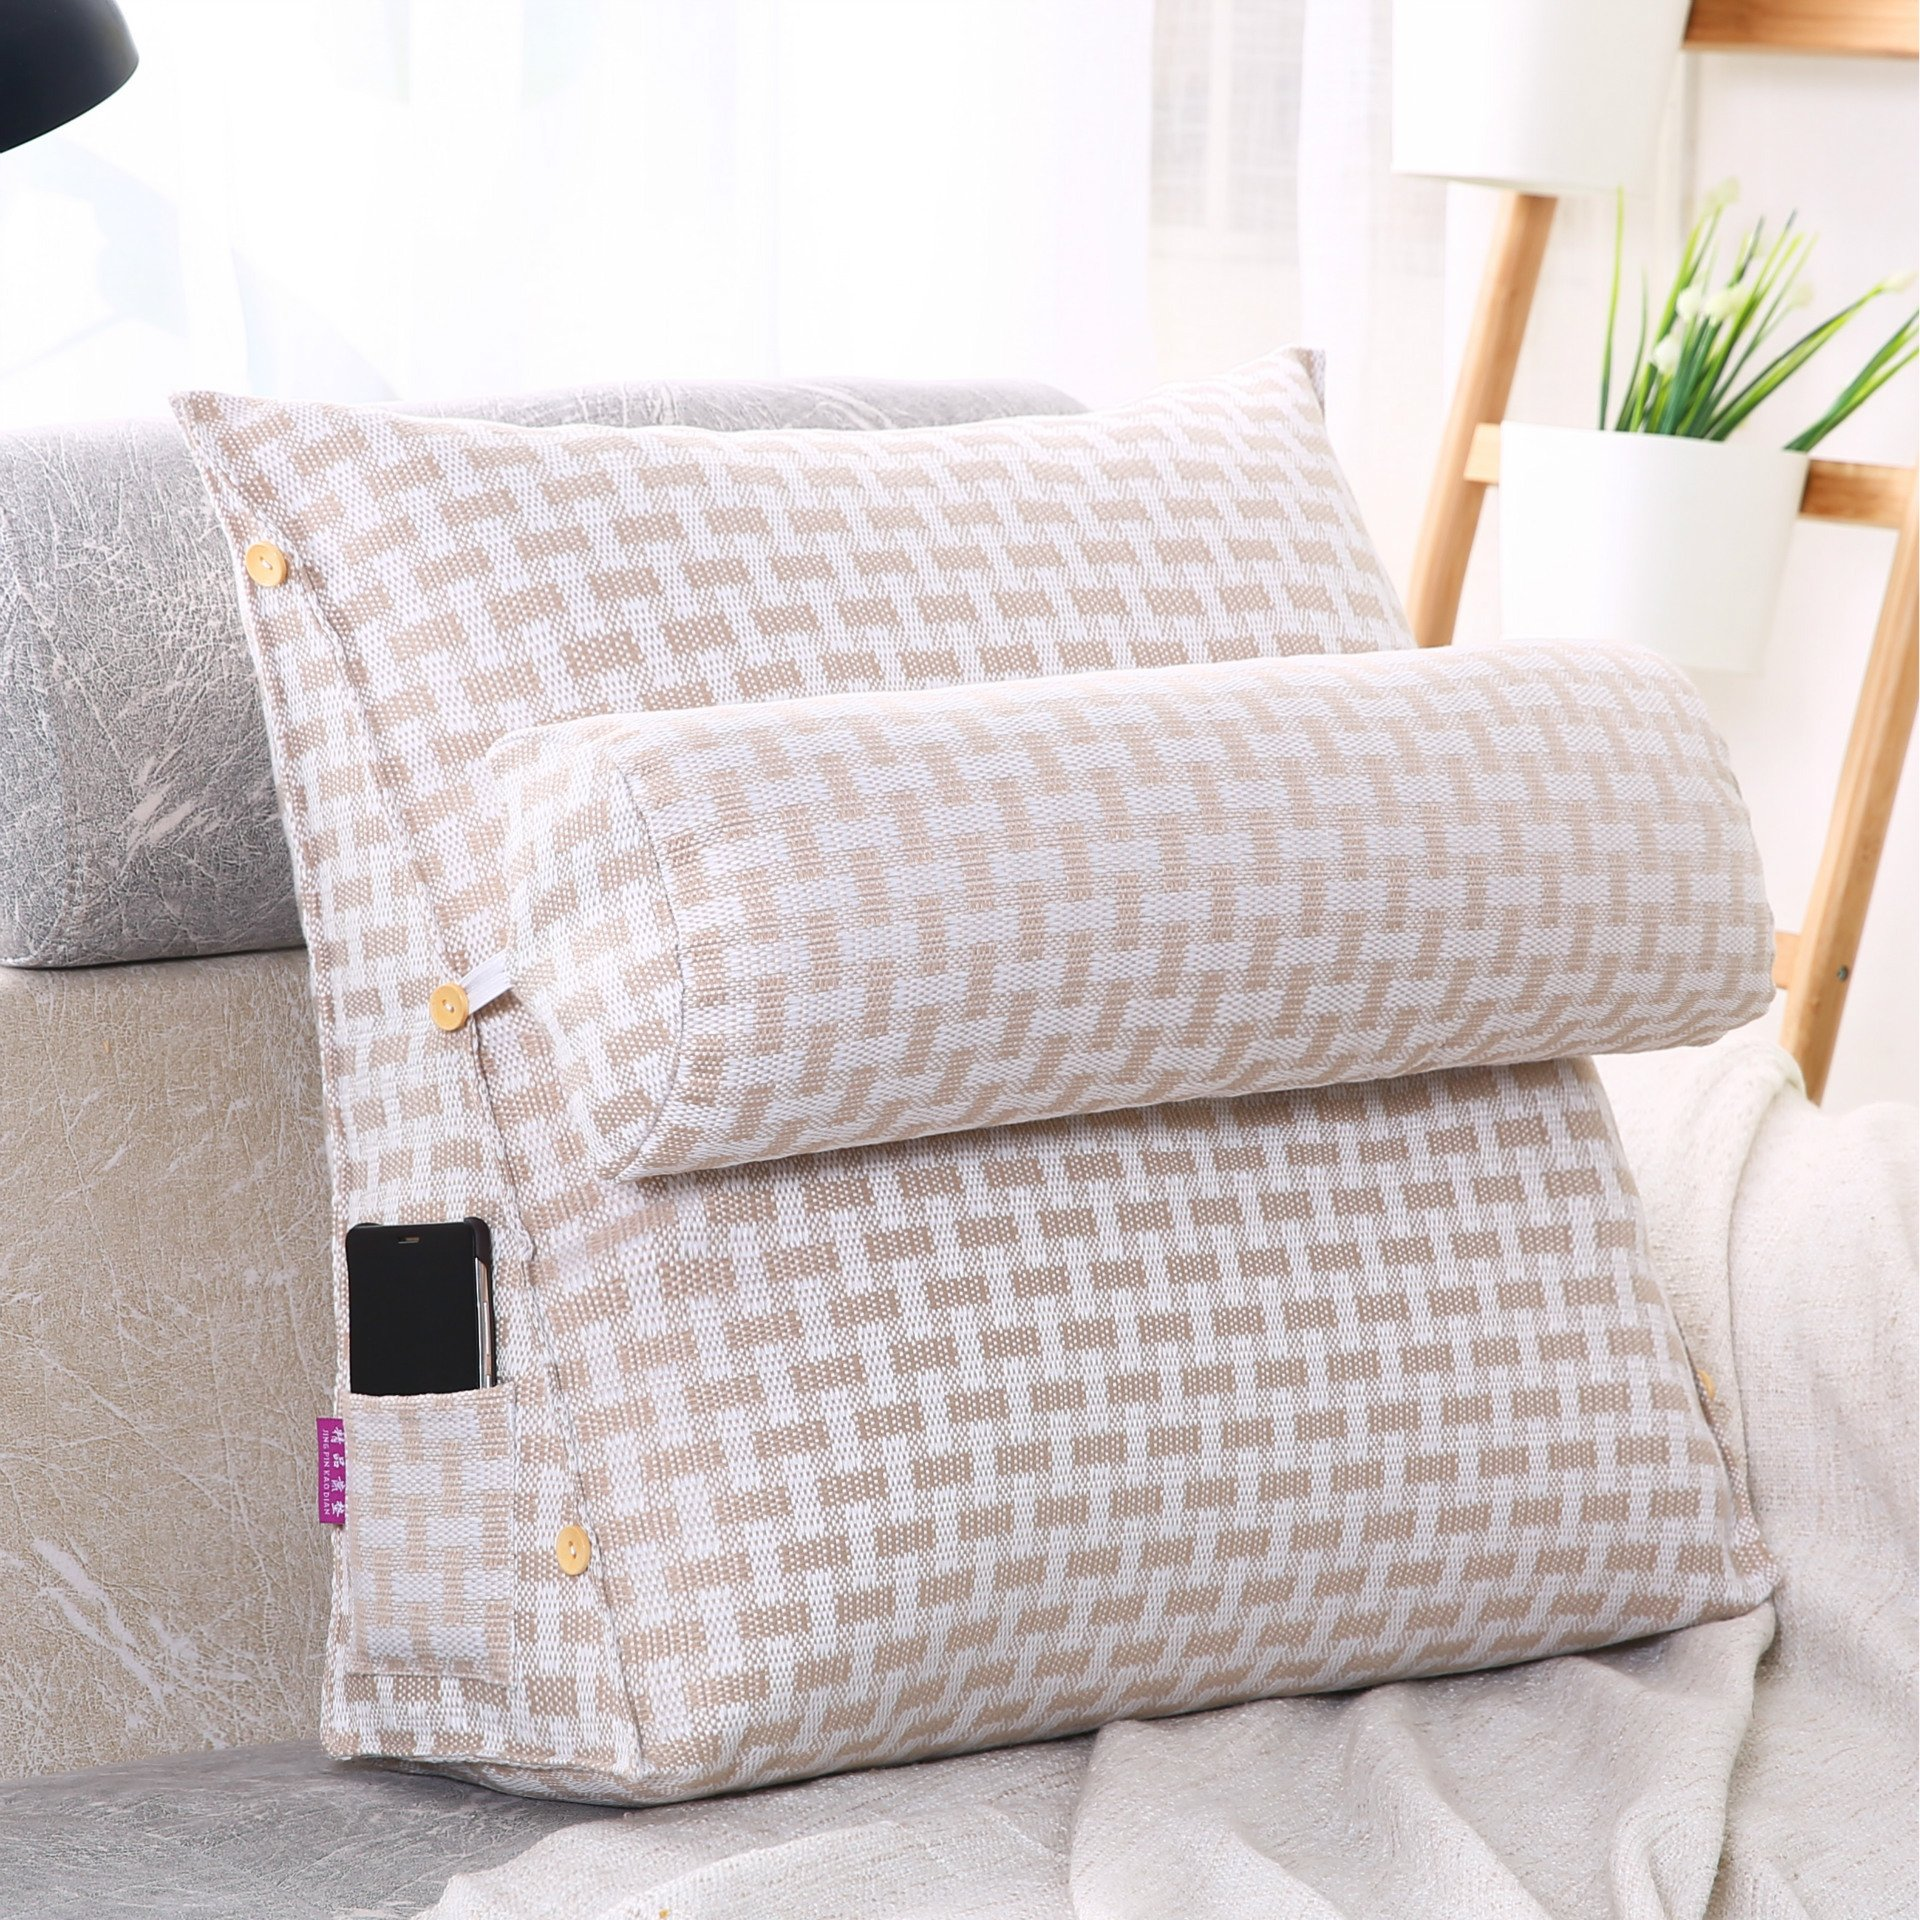 LUOTIANLANG Office sofa cushion pillow waist pillow for pregnant women Home Furnishing ornaments triangle comfortable cushion,White lattice,50x200x20cm